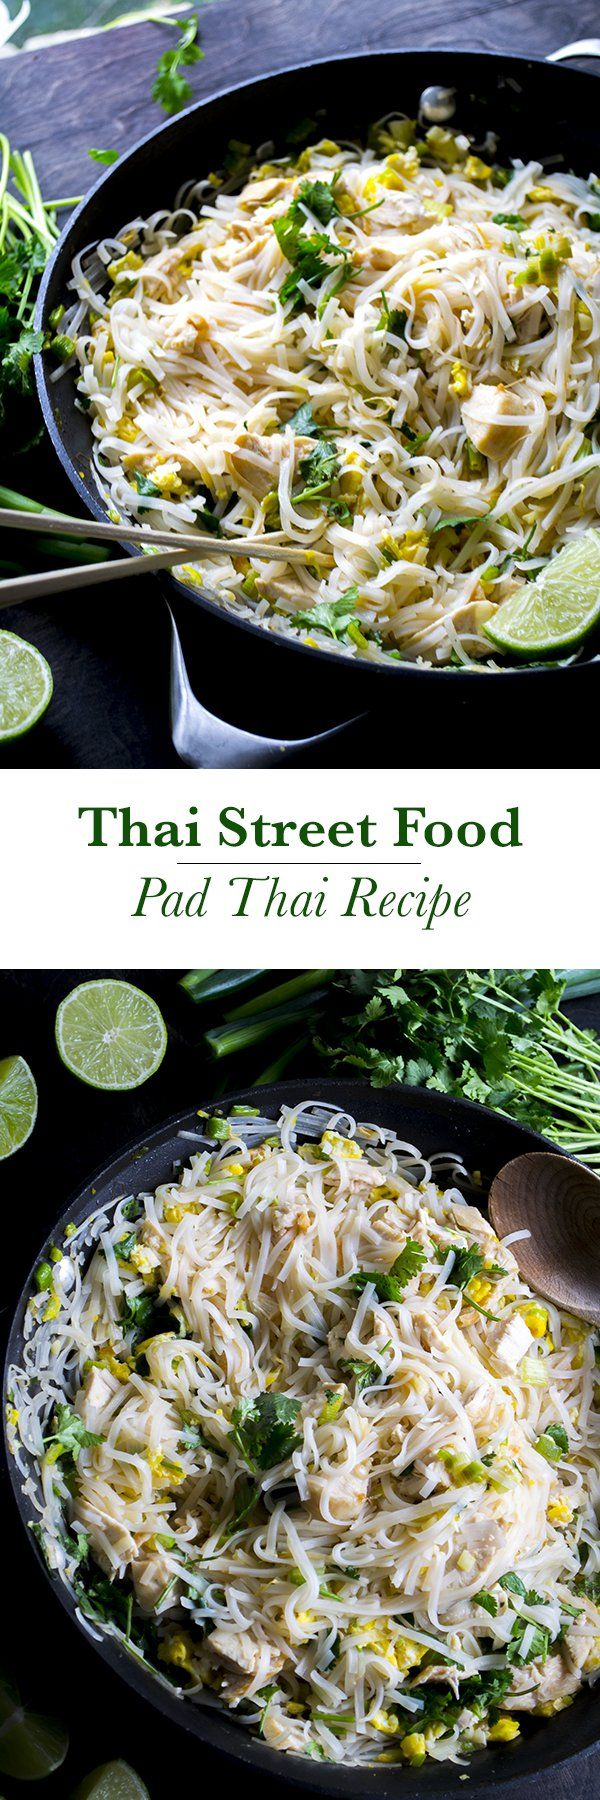 Pad Thai Recipe from Talia - Someone I know that knows what street pad thai actually tastes like